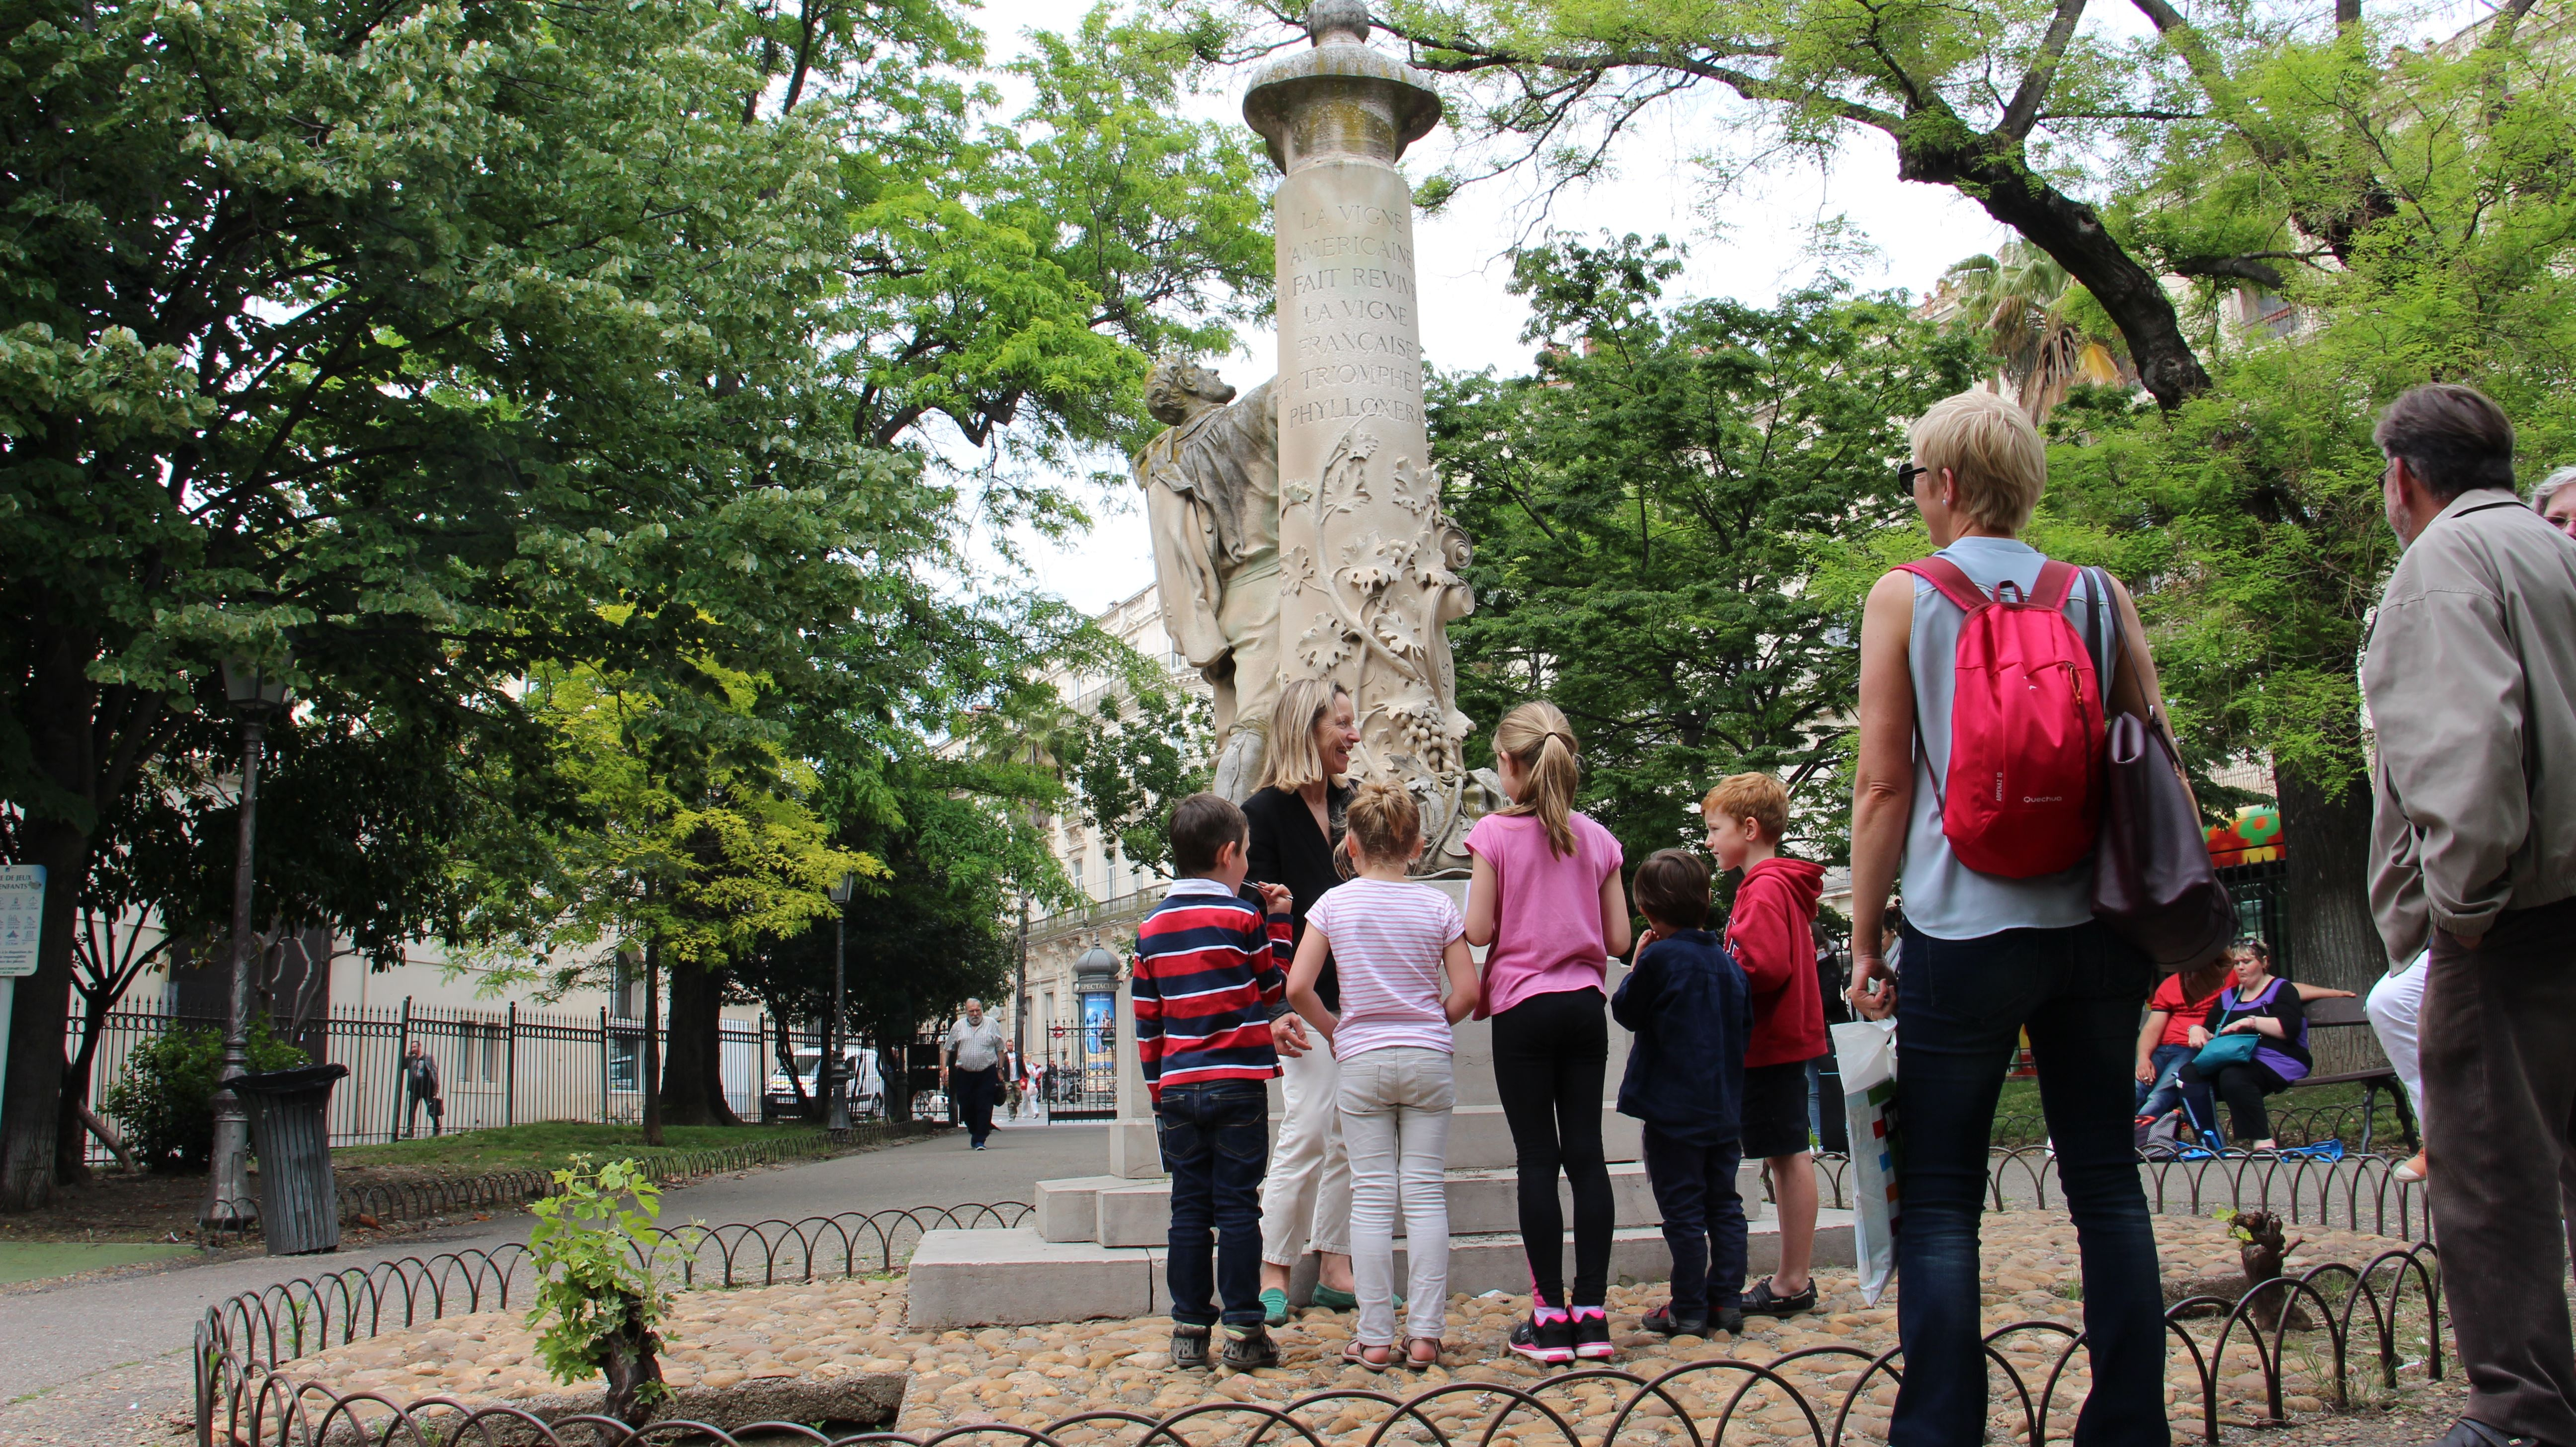 French guided tour - Special visit for children